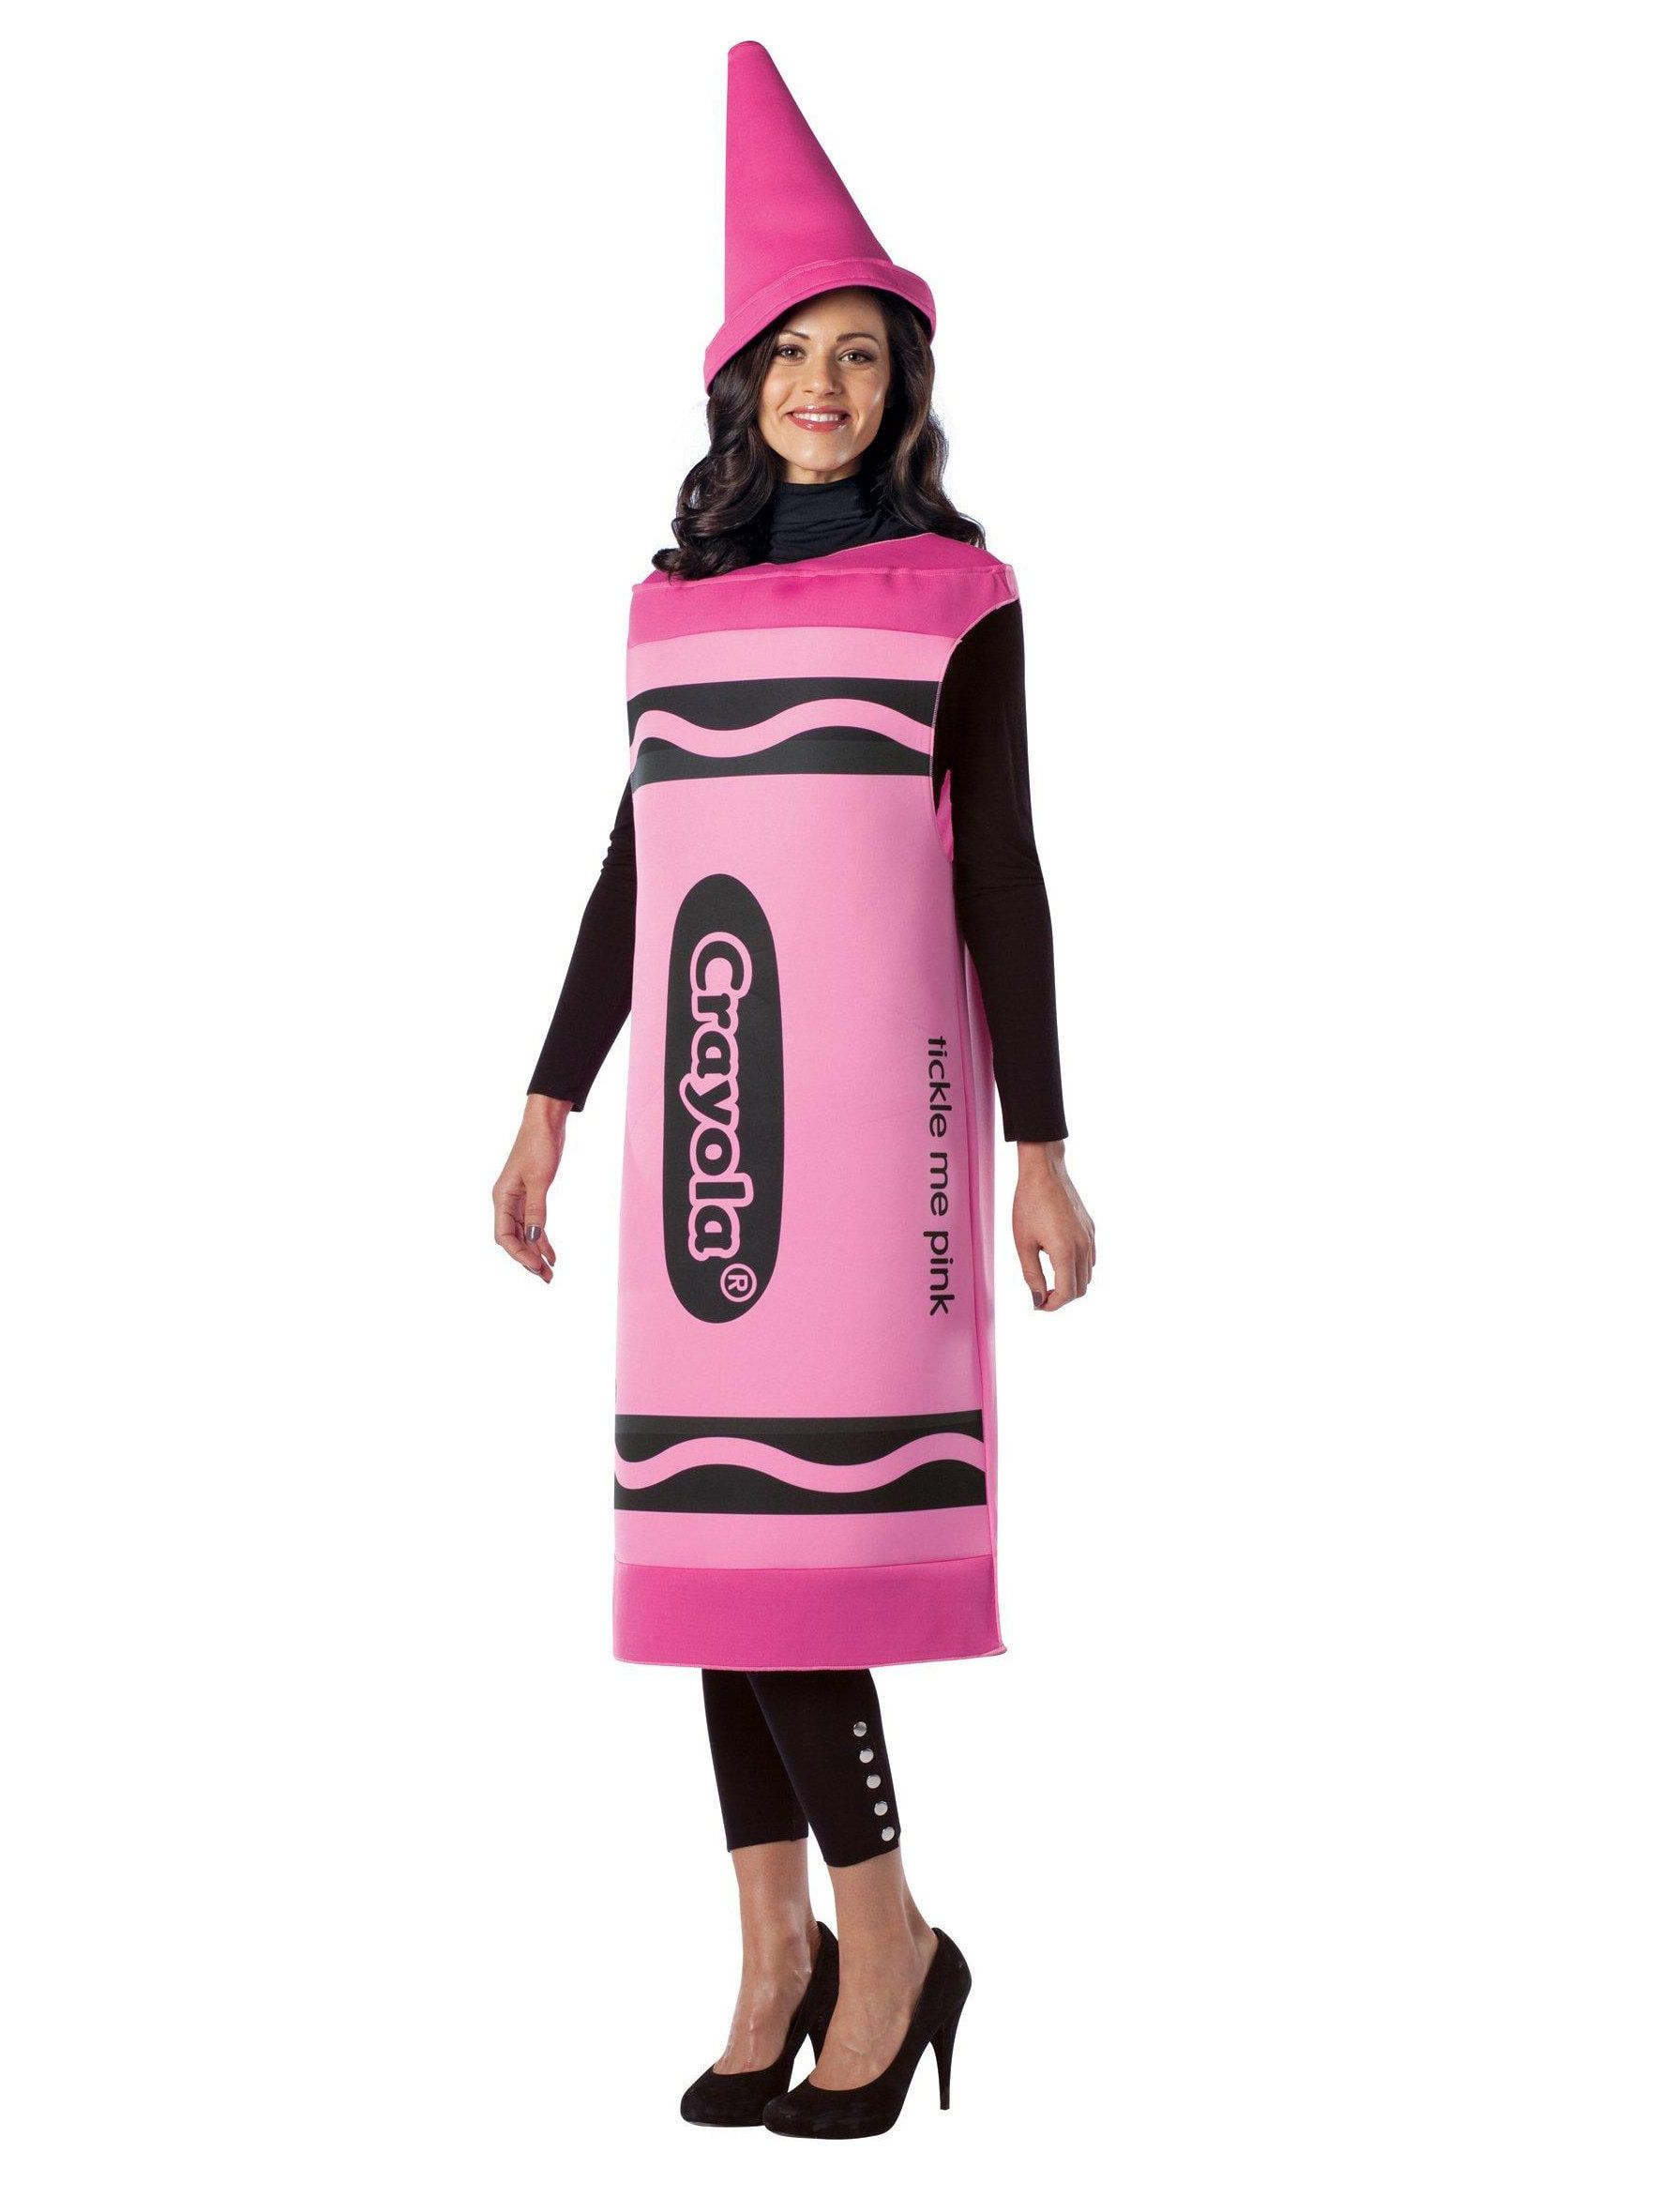 Crayola Tickle Me Pink Crayon Costume For Adults  sc 1 st  Wholesale Halloween Costumes & Crayola Tickle Me Pink Crayon Costume For Adults | Wholesale ...